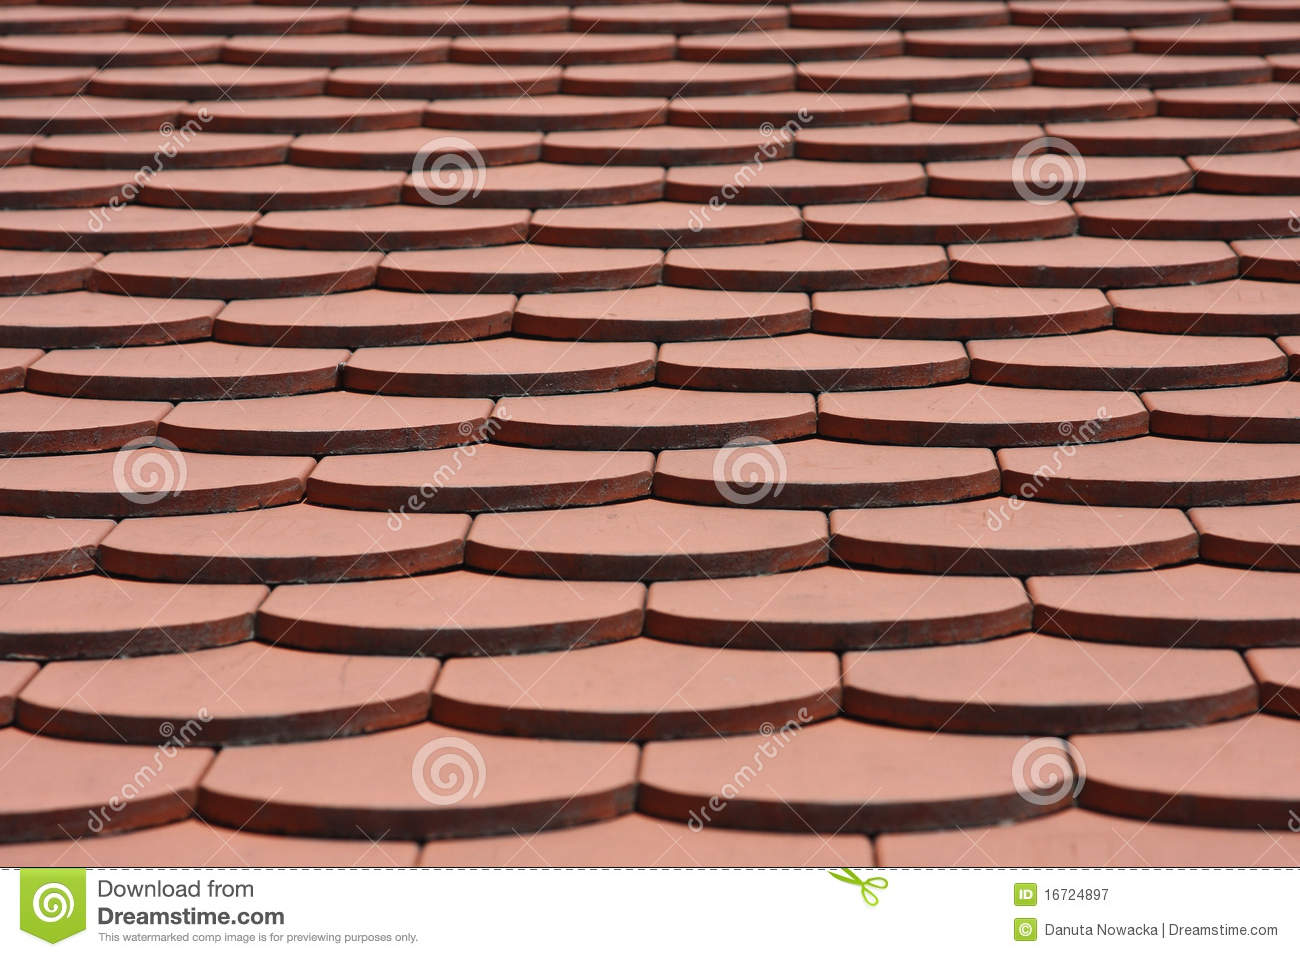 Roof tile pattern stock image image of terracotta design for Roof tile patterns